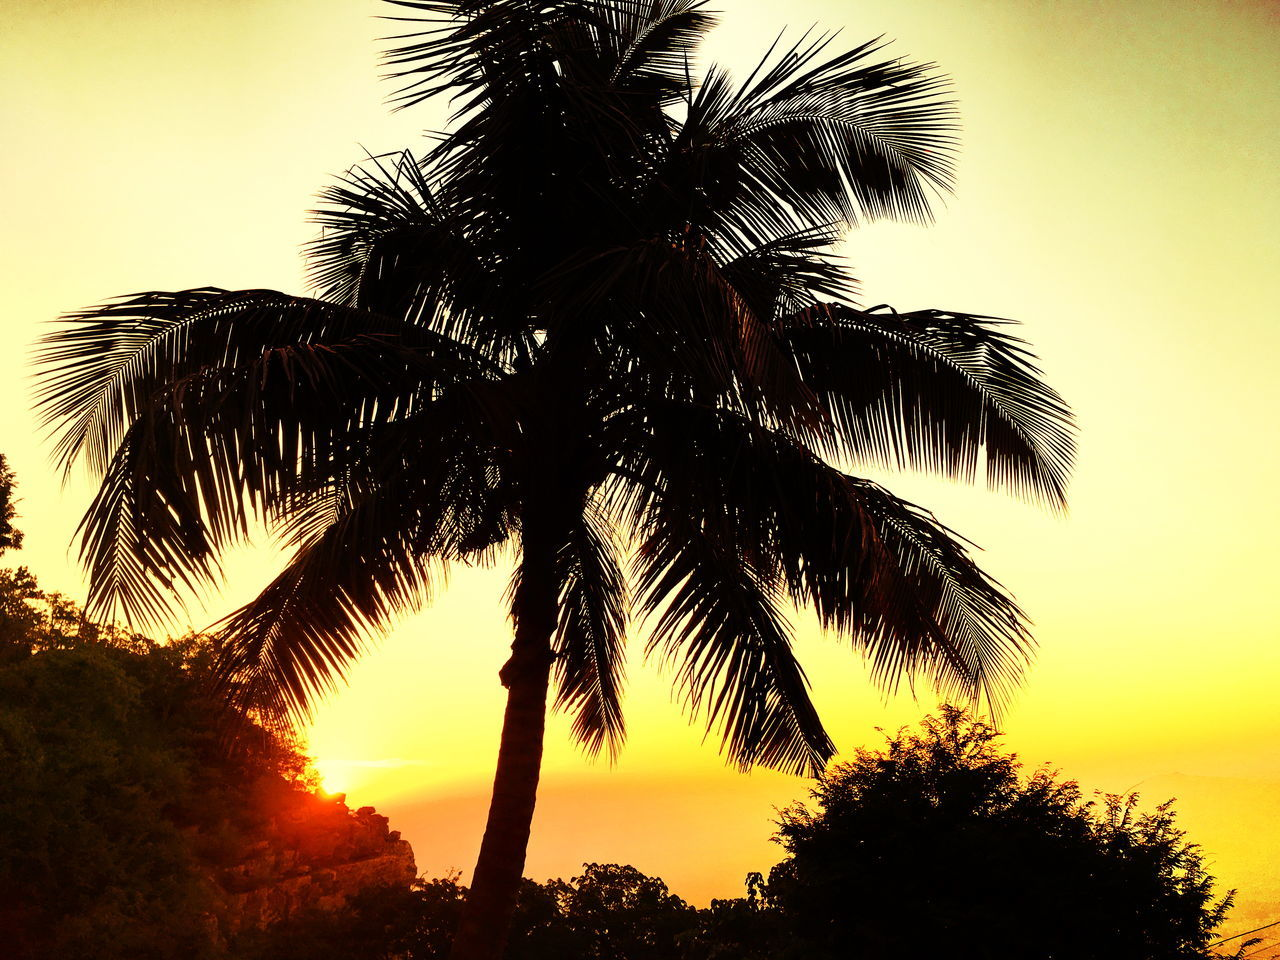 Beauty In Nature Day Low Angle View Nature No People Outdoors Palm Frond Palm Tree Scenics Silhouette Sky Sunset Tranquil Scene Tranquility Tree Tropical Climate